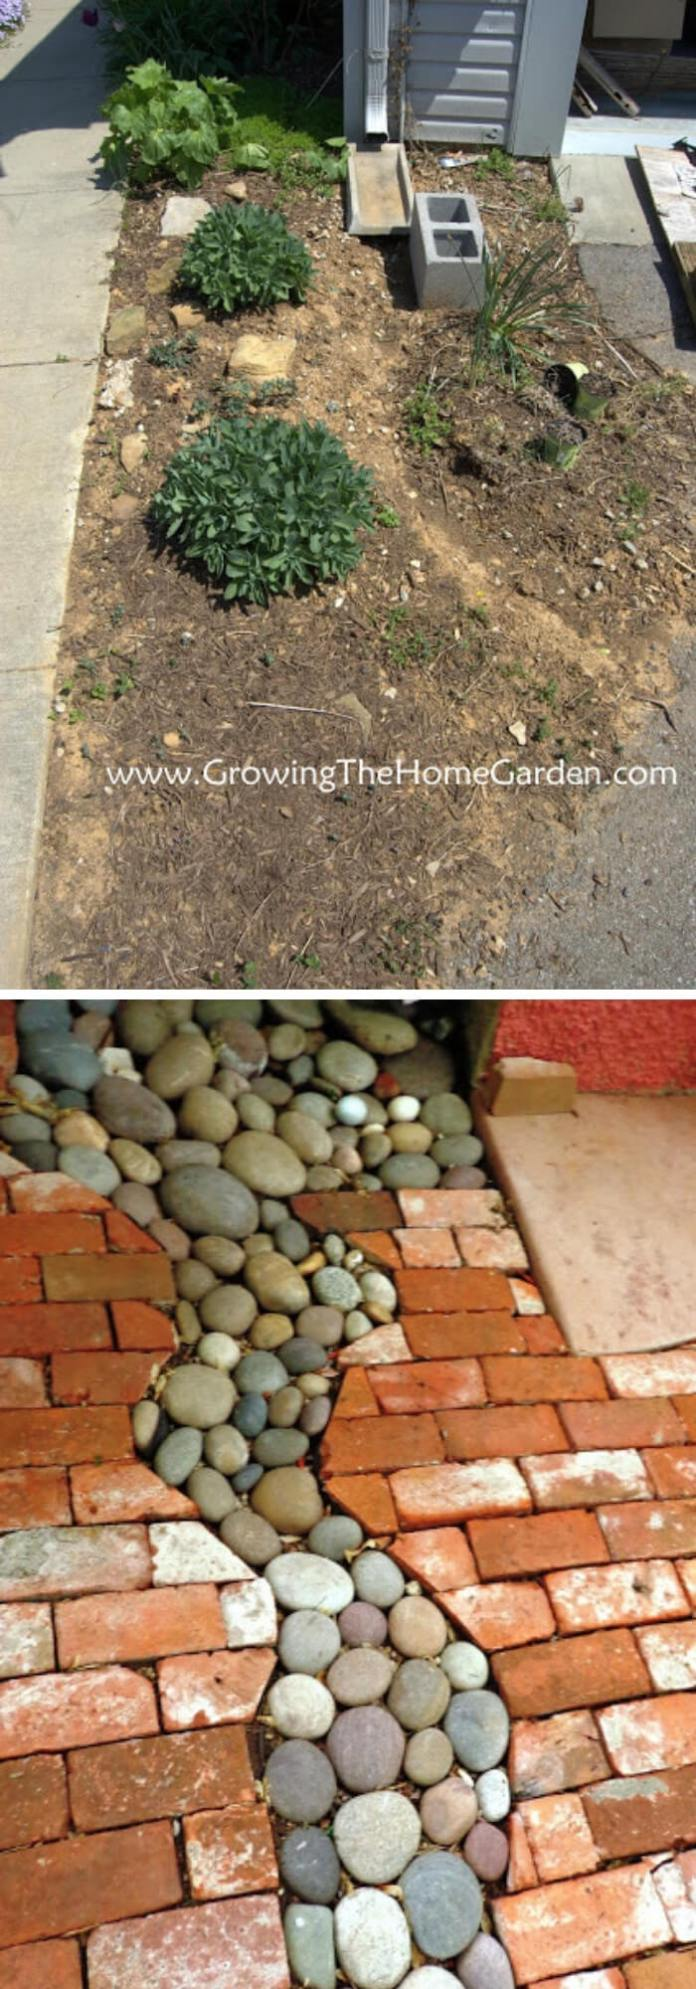 Making A Dry Creek Bed Drainage Canal for Downspouts | Best Downspout landscaping ideas